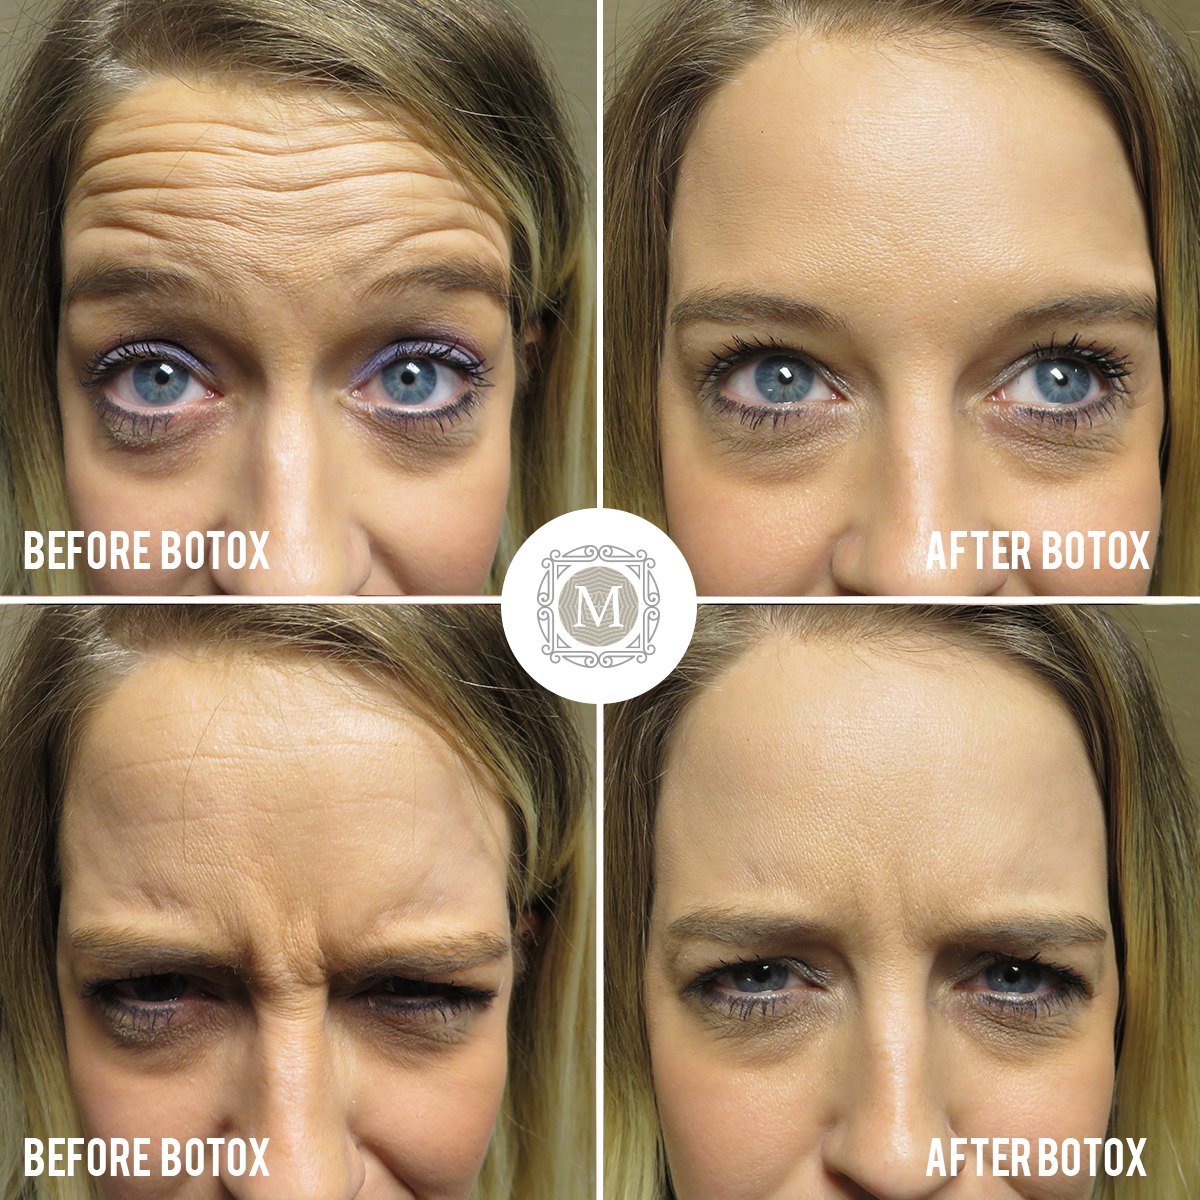 This Patient Had 20 Units Of Botox For Forehead Wrinkles Frown Lines Lines Between The Brow Forehead Wrinkles Botox Forehead Botox